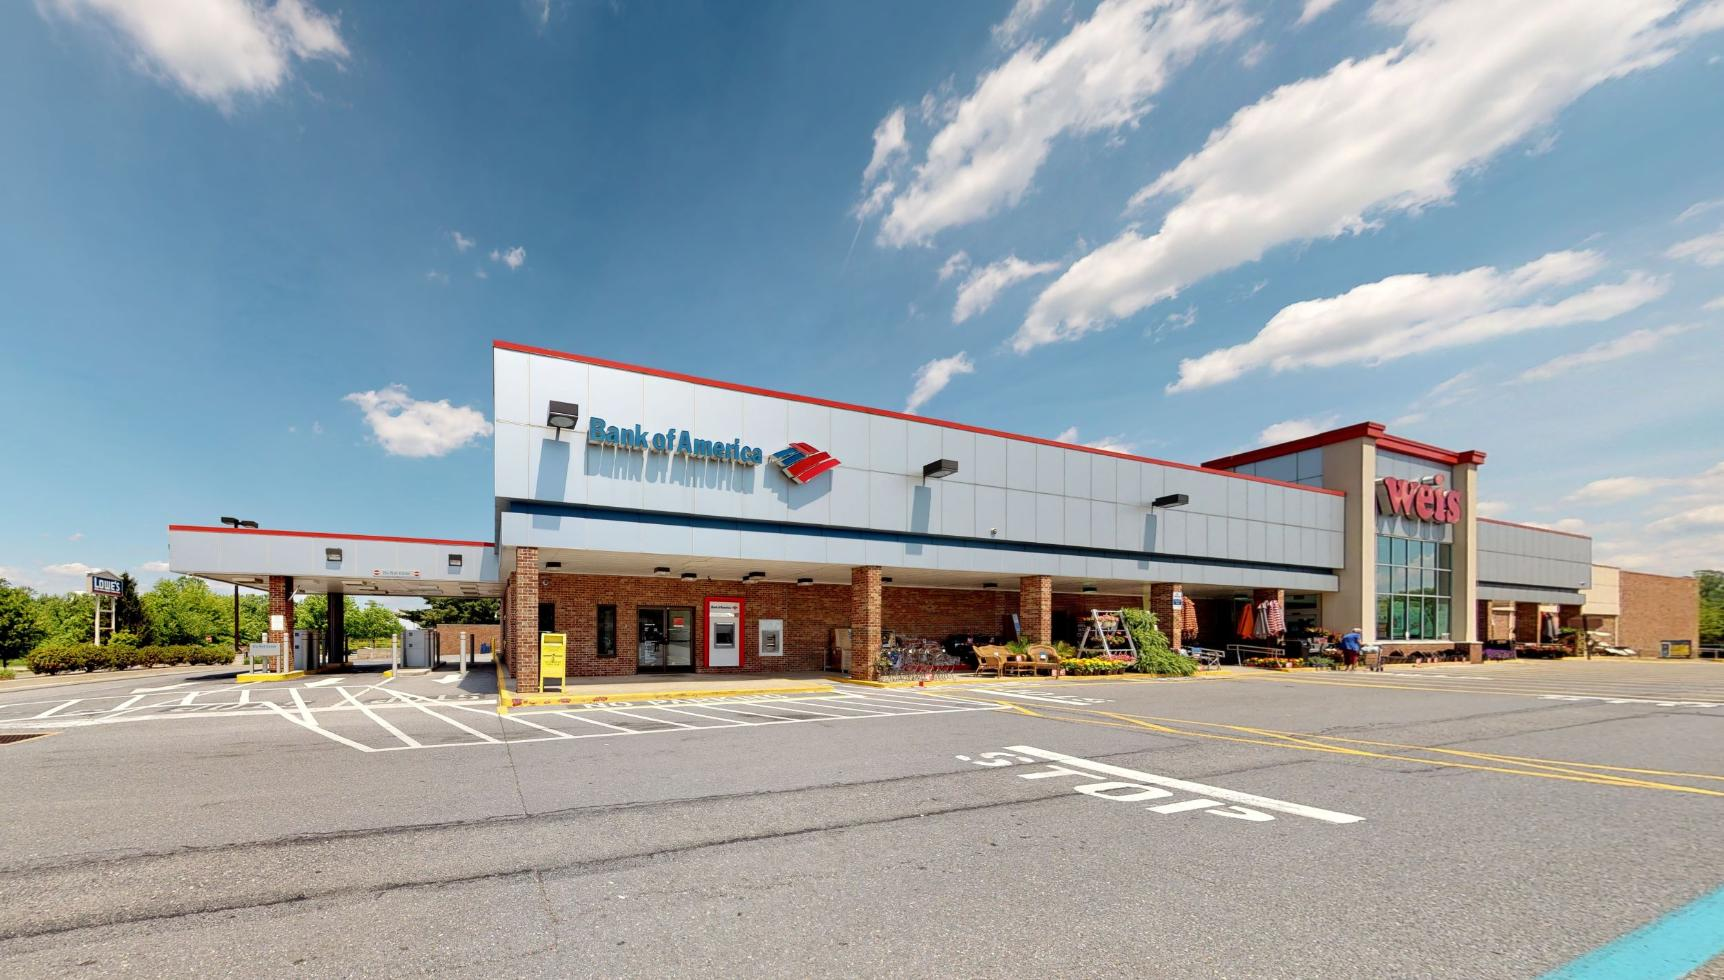 Bank of America financial center with drive-thru ATM   630 Baltimore Blvd, Westminster, MD 21157